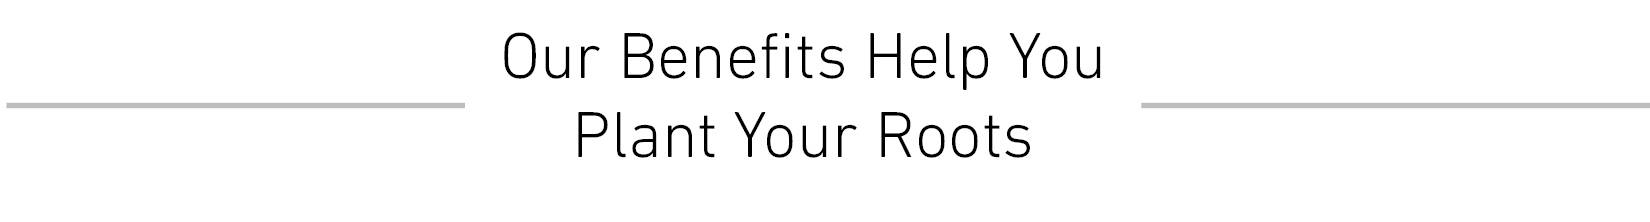 Our Benefits help you plant your roots